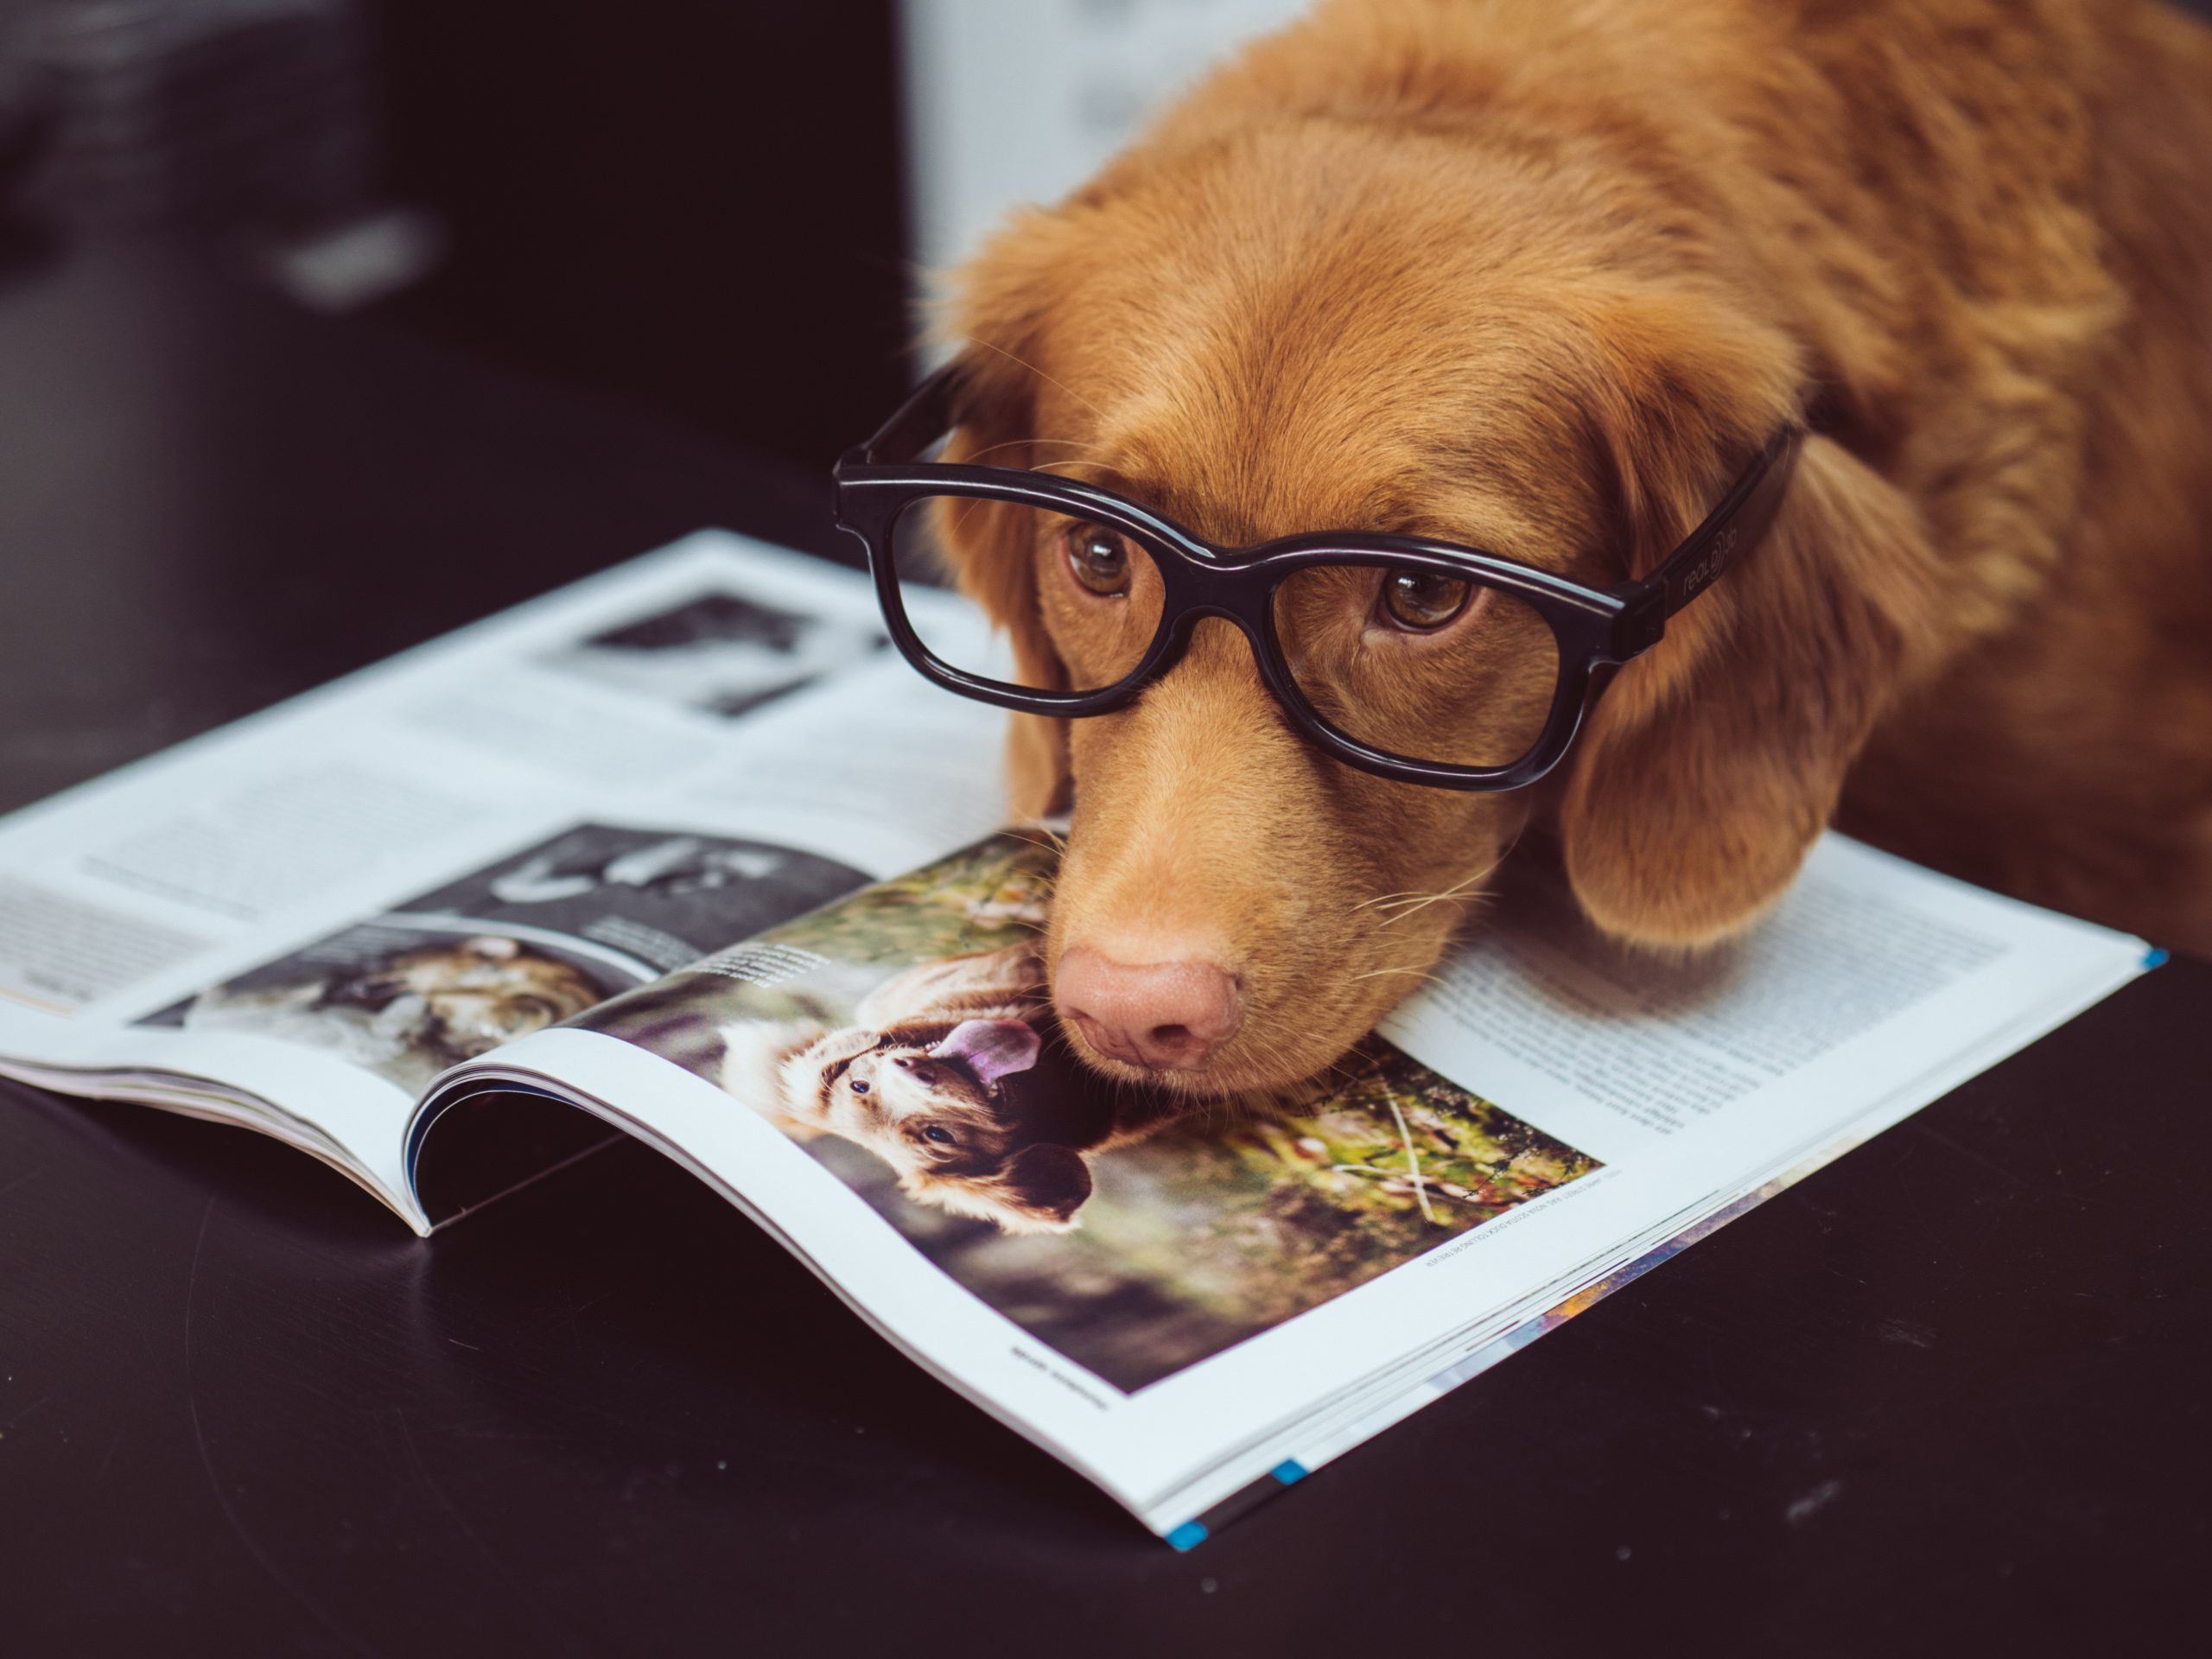 The Top 10 Smartest Dogs